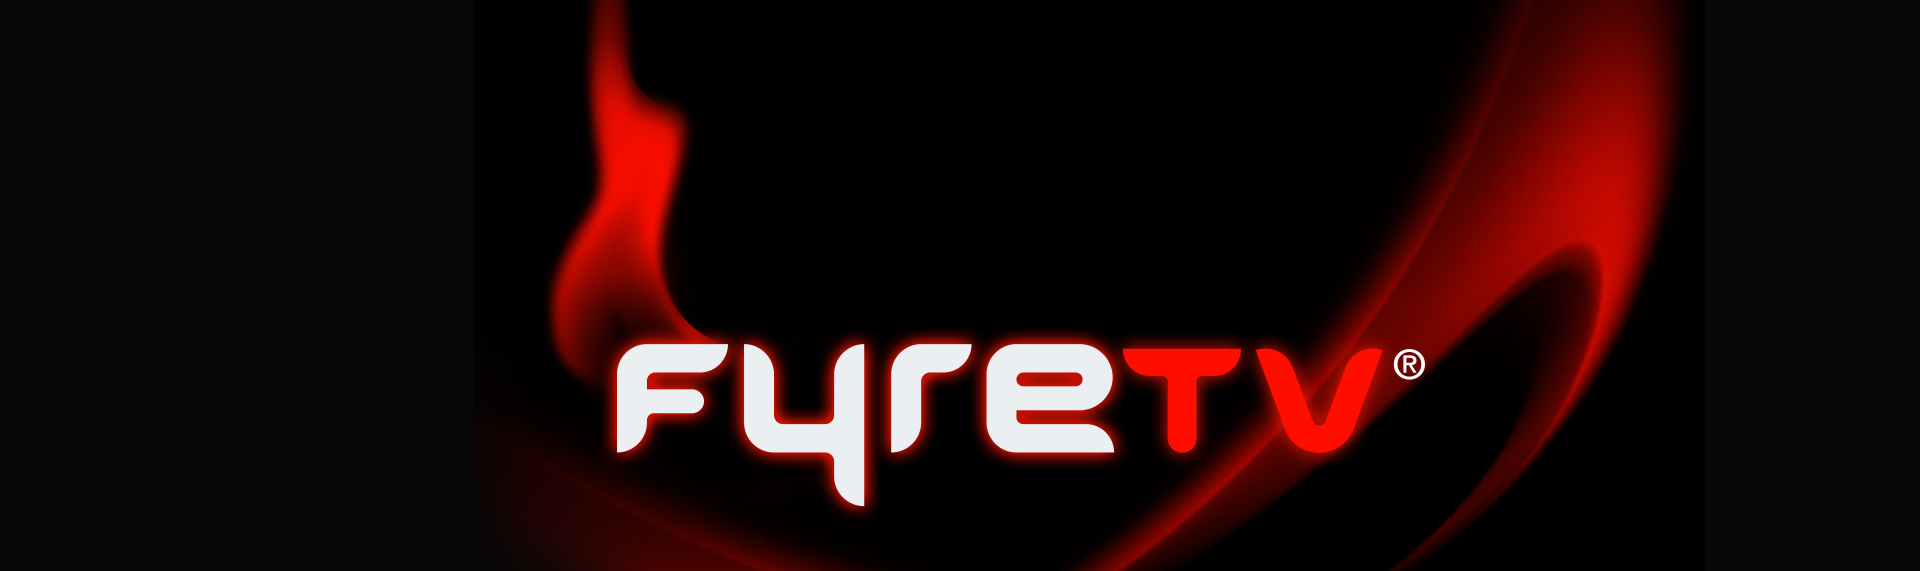 """FyreTV  Brand Identity Design, Product Name Creation  When Wreal first approached us, the working name for their service lacked """"punch"""". We came up with a name that was not only a perfect fit, but one that actually had an available domain name - a considerable feat these days. The results was a catchy, easy to remember name, and a sure-fire hit with the target demographic. By utilizing a licking flame and precisely the right typeface, we created an identity that drove the look & feel of the entire user experience."""